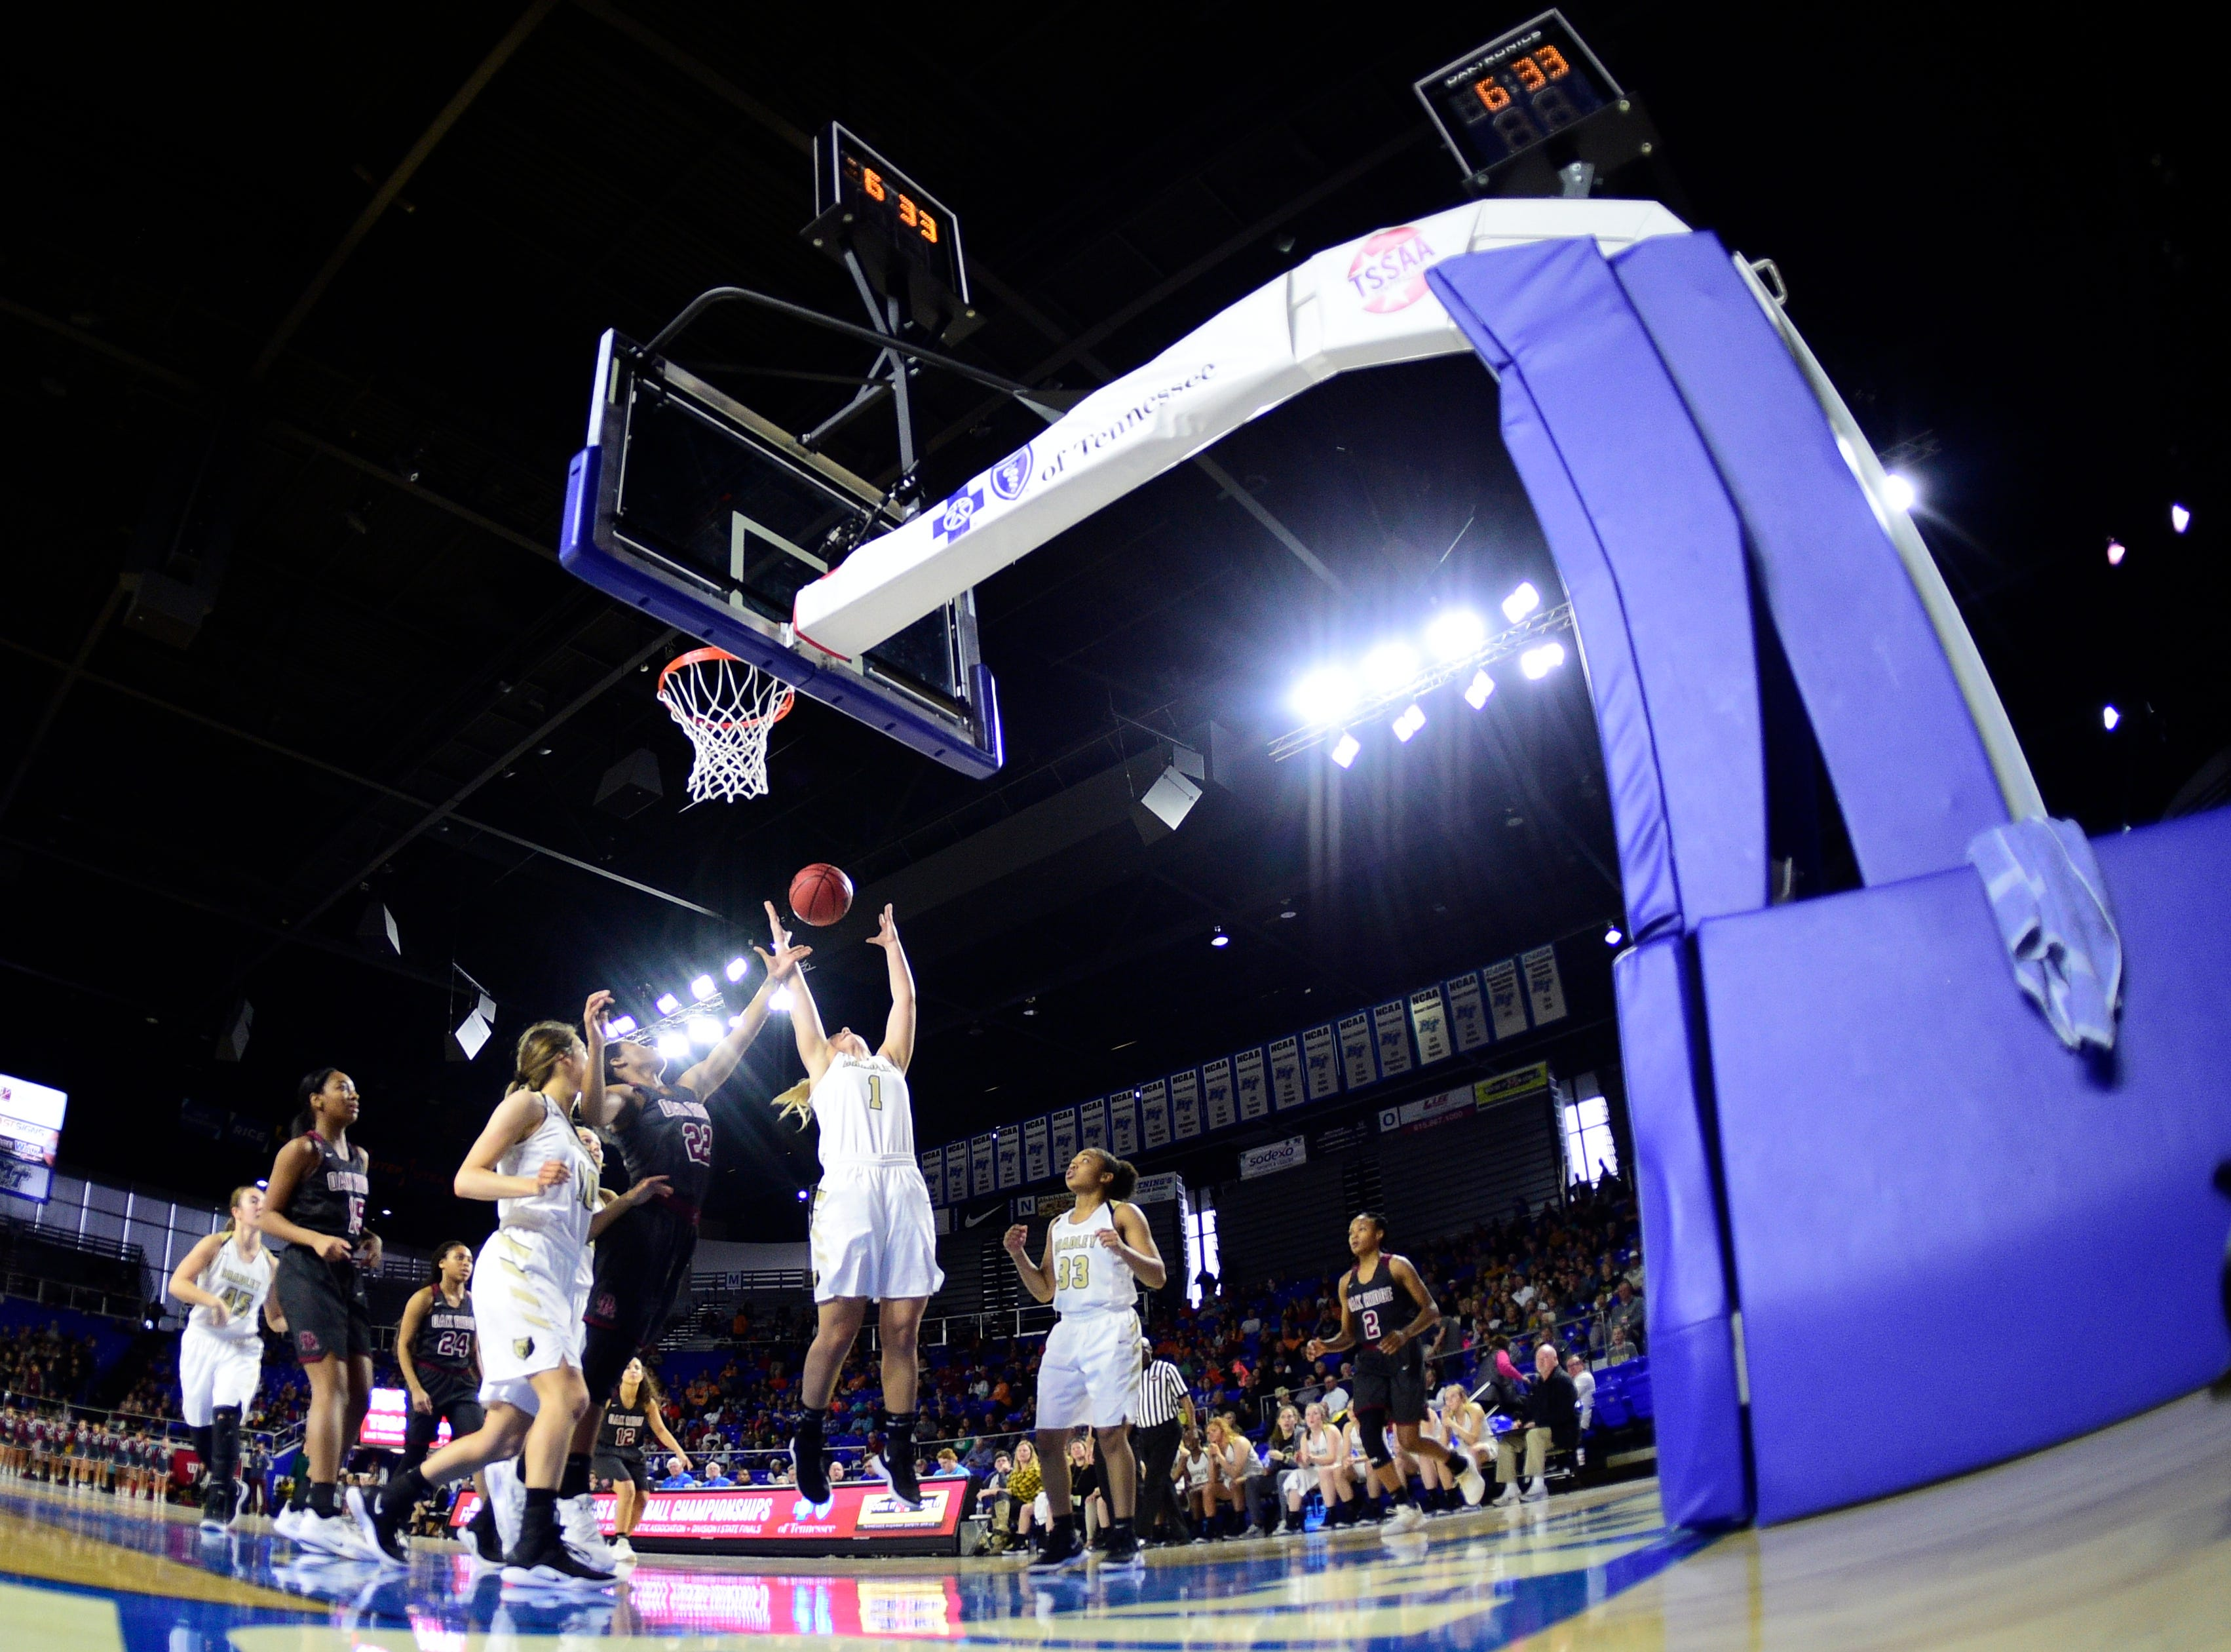 Bradley Central's Kaleigh Hughes (1) jumps for the rebound during a game between Oak Ridge and Bradley Central at the TSSAA girls state tournament at the Murphy Center in Murfreesboro, Tennessee on Friday, March 8, 2019.